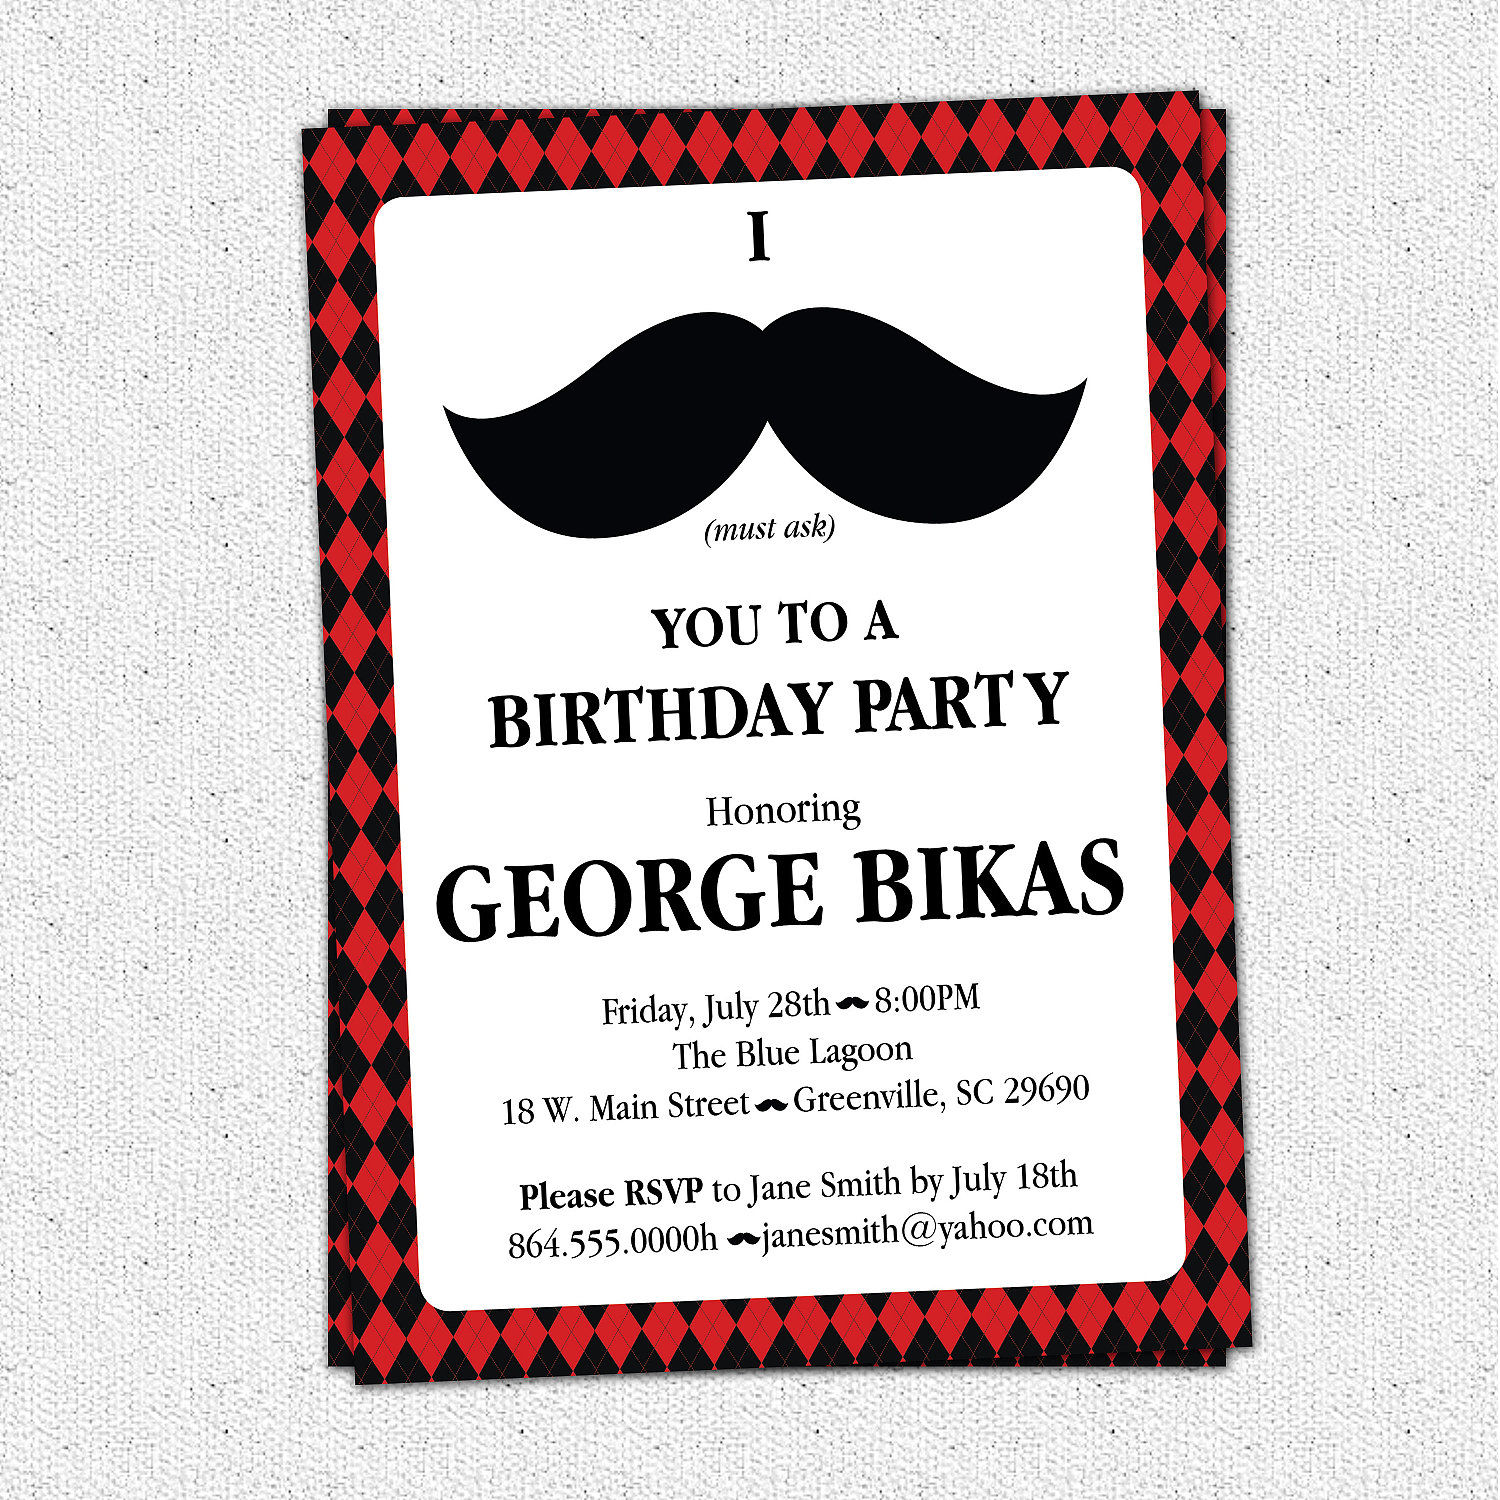 Mustache argyle birthday party bash invitations manly 30th 40th mustache argyle birthday party bash invitations manly 30th 40th 50th 60th man39 filmwisefo Image collections